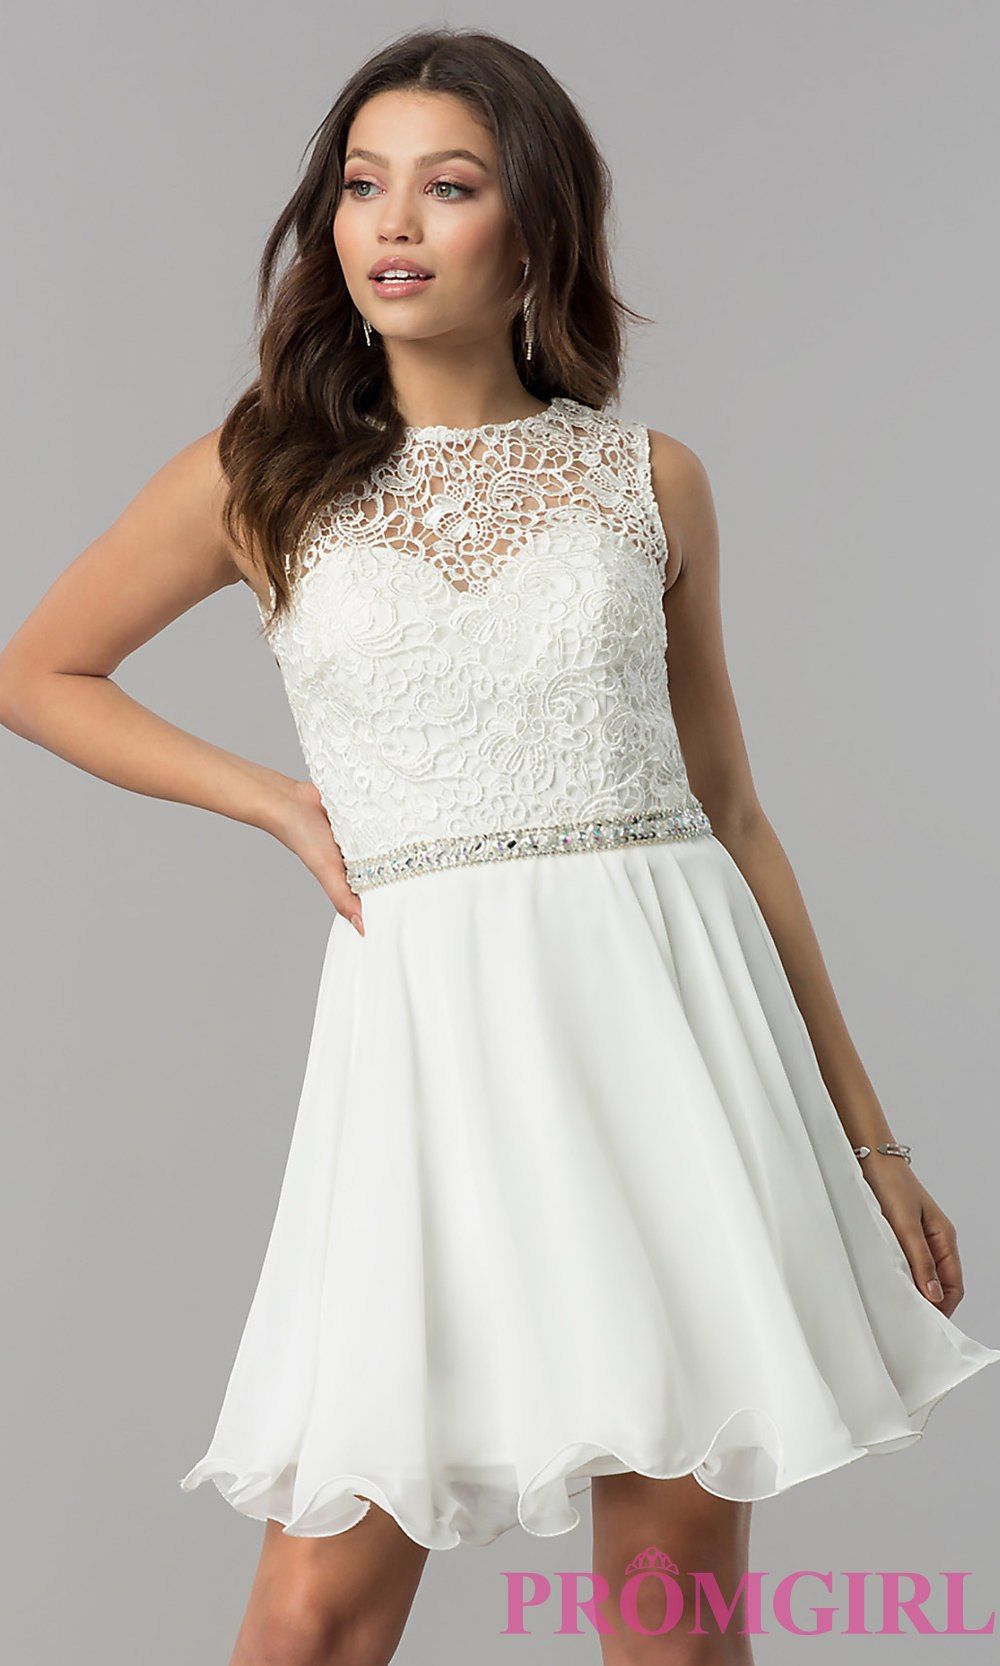 I like style fbgs from promgirl do you like grad